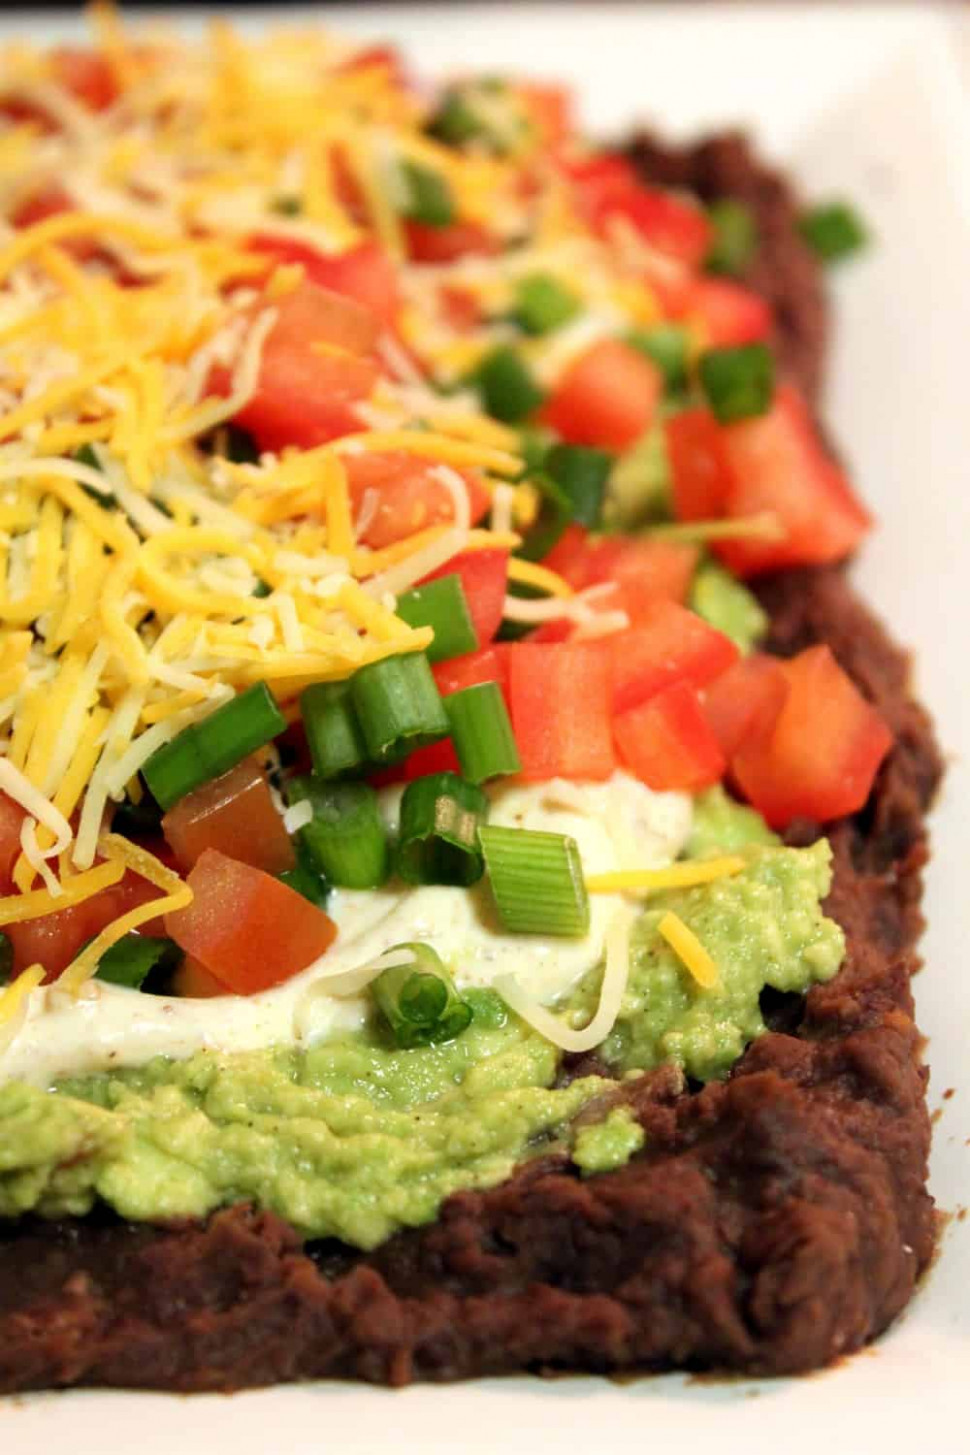 Guilt-Free, Healthy 7 Layer Bean Dip - The Picky Eater - what are healthy food recipes